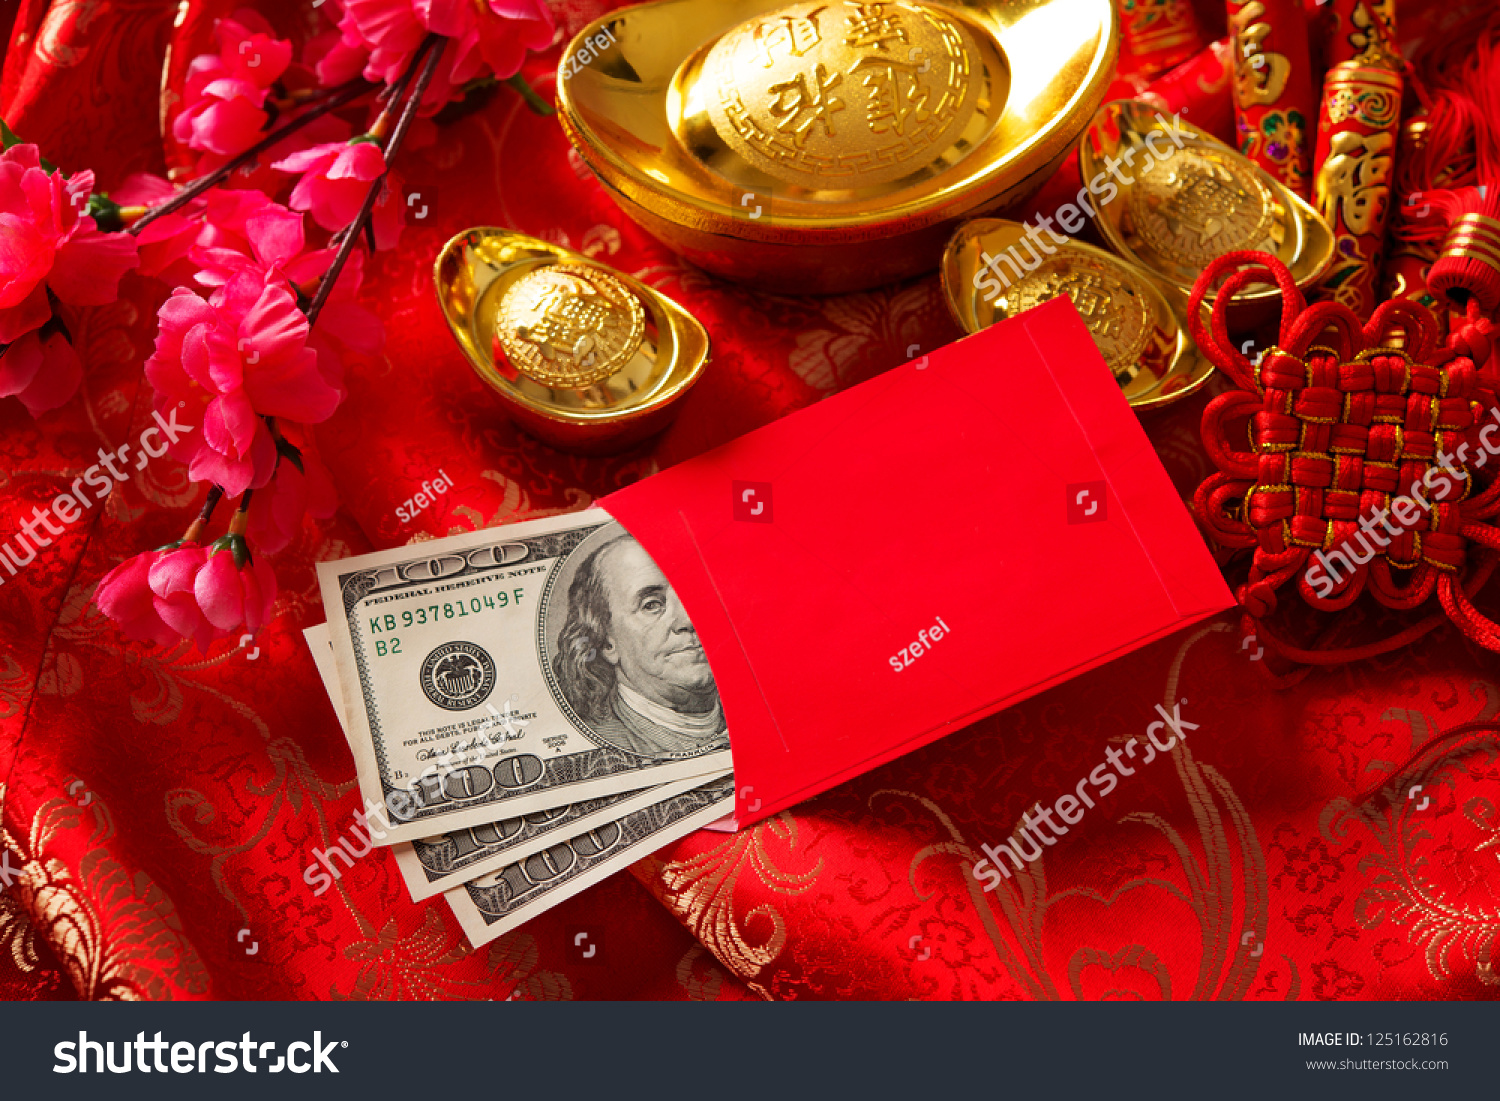 Chinese new year festival decorations red packet or ang for Ang pow packet decoration